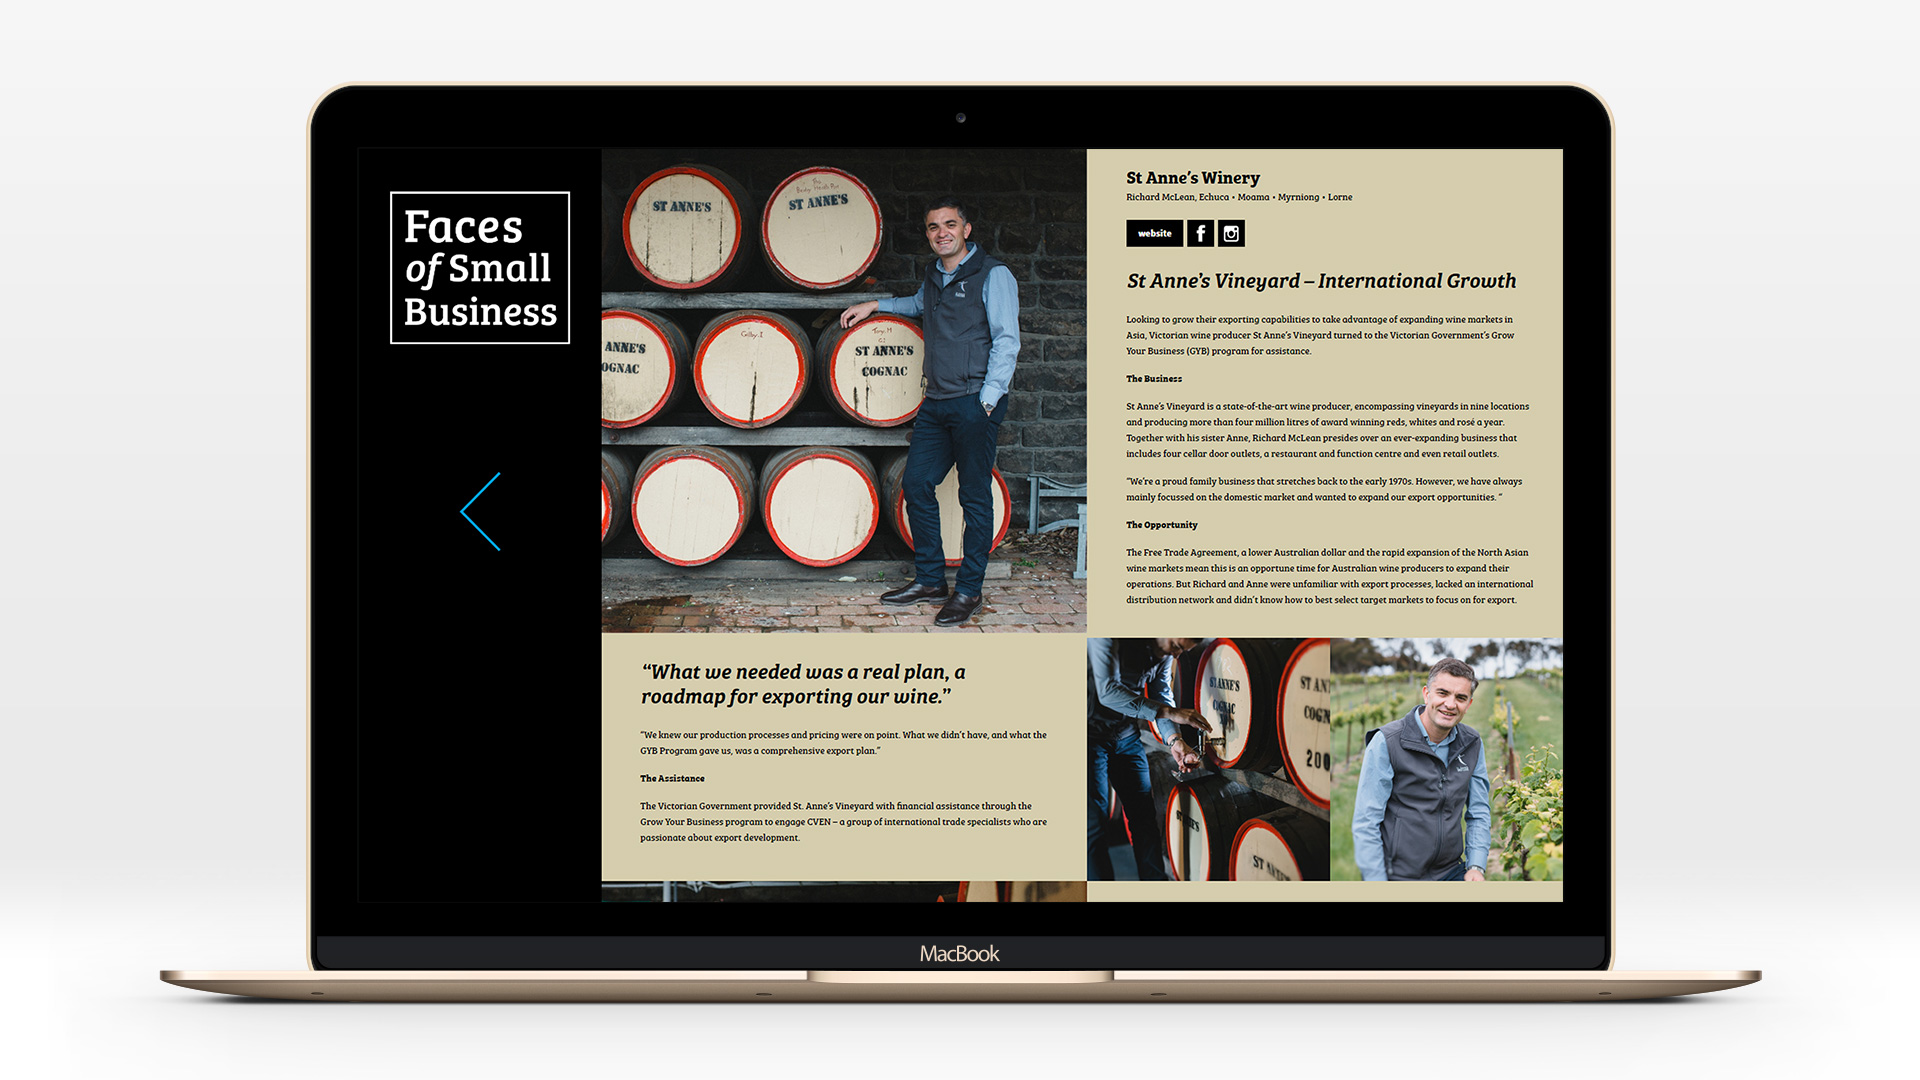 Faces of Small Business - St. Anne's Winery